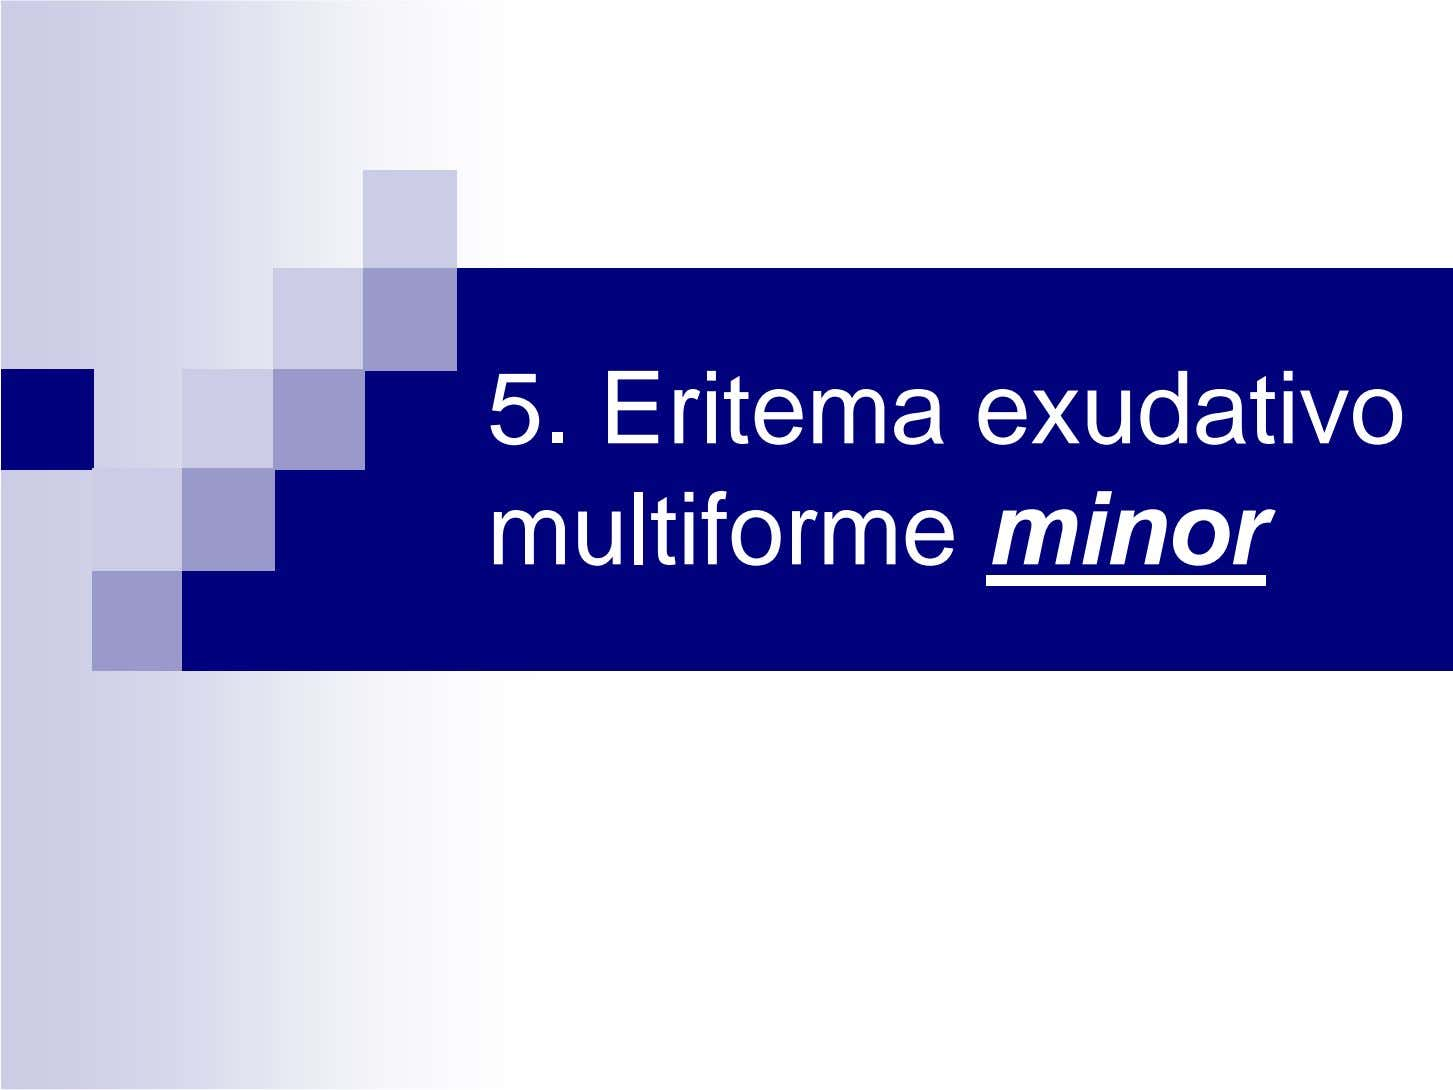 5. Eritema exudativo multiforme minor